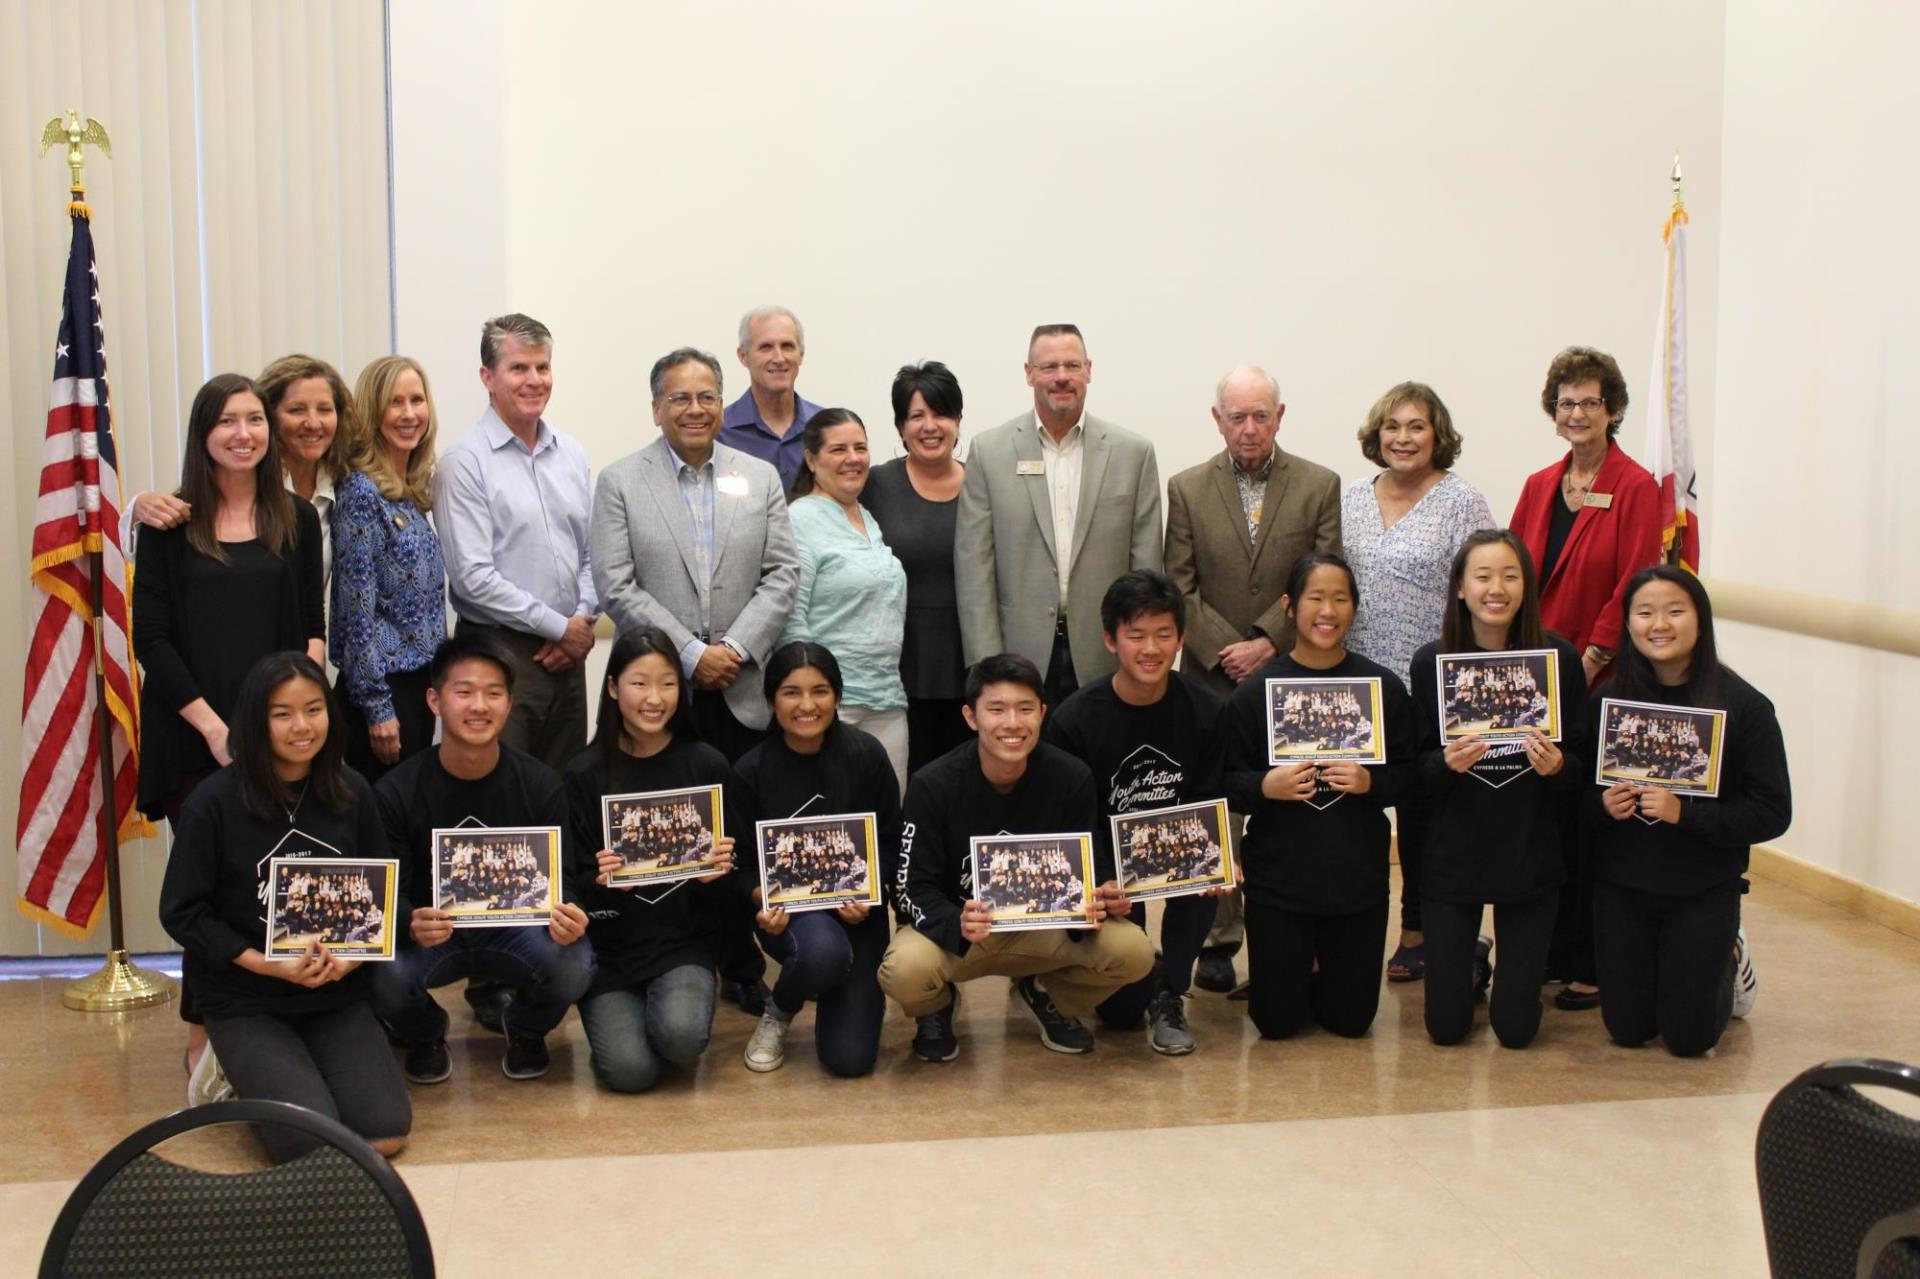 City Council Members, Recreation Committee Members, and Youth Volunteer Service Award Recipients